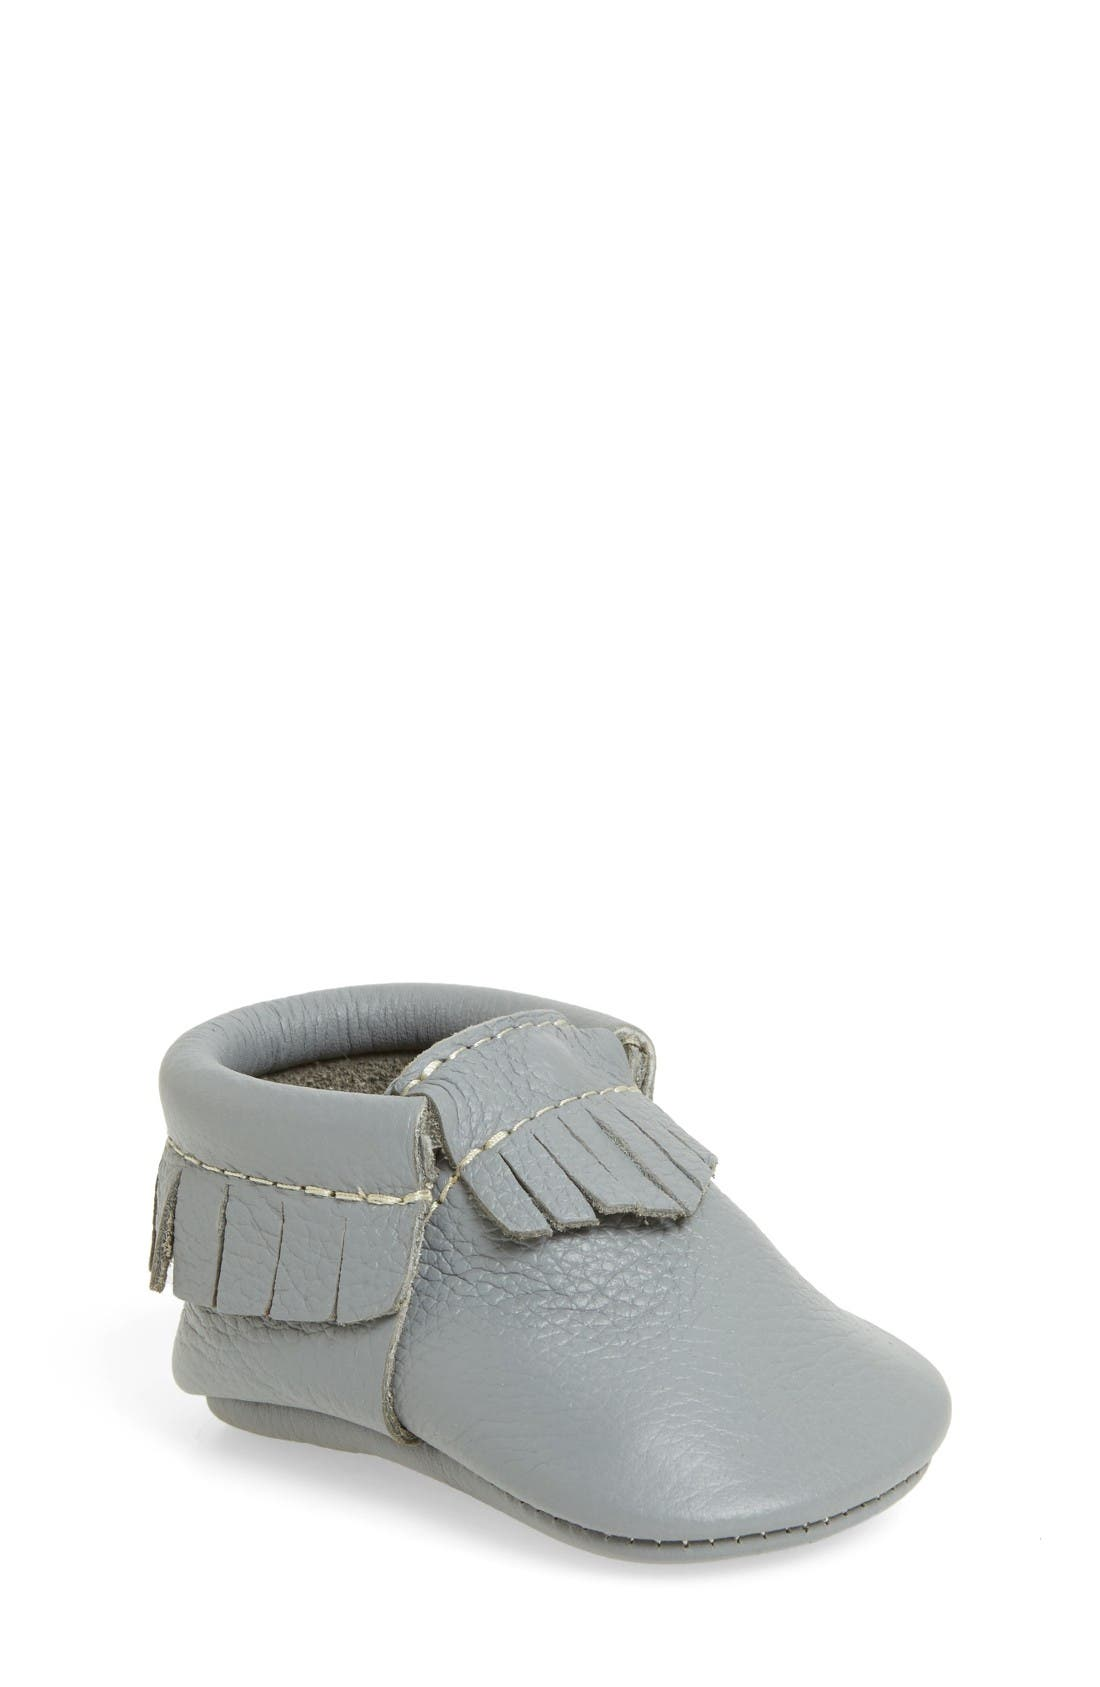 Main Image - Freshly Picked Leather Moccasin (Baby & Walker)